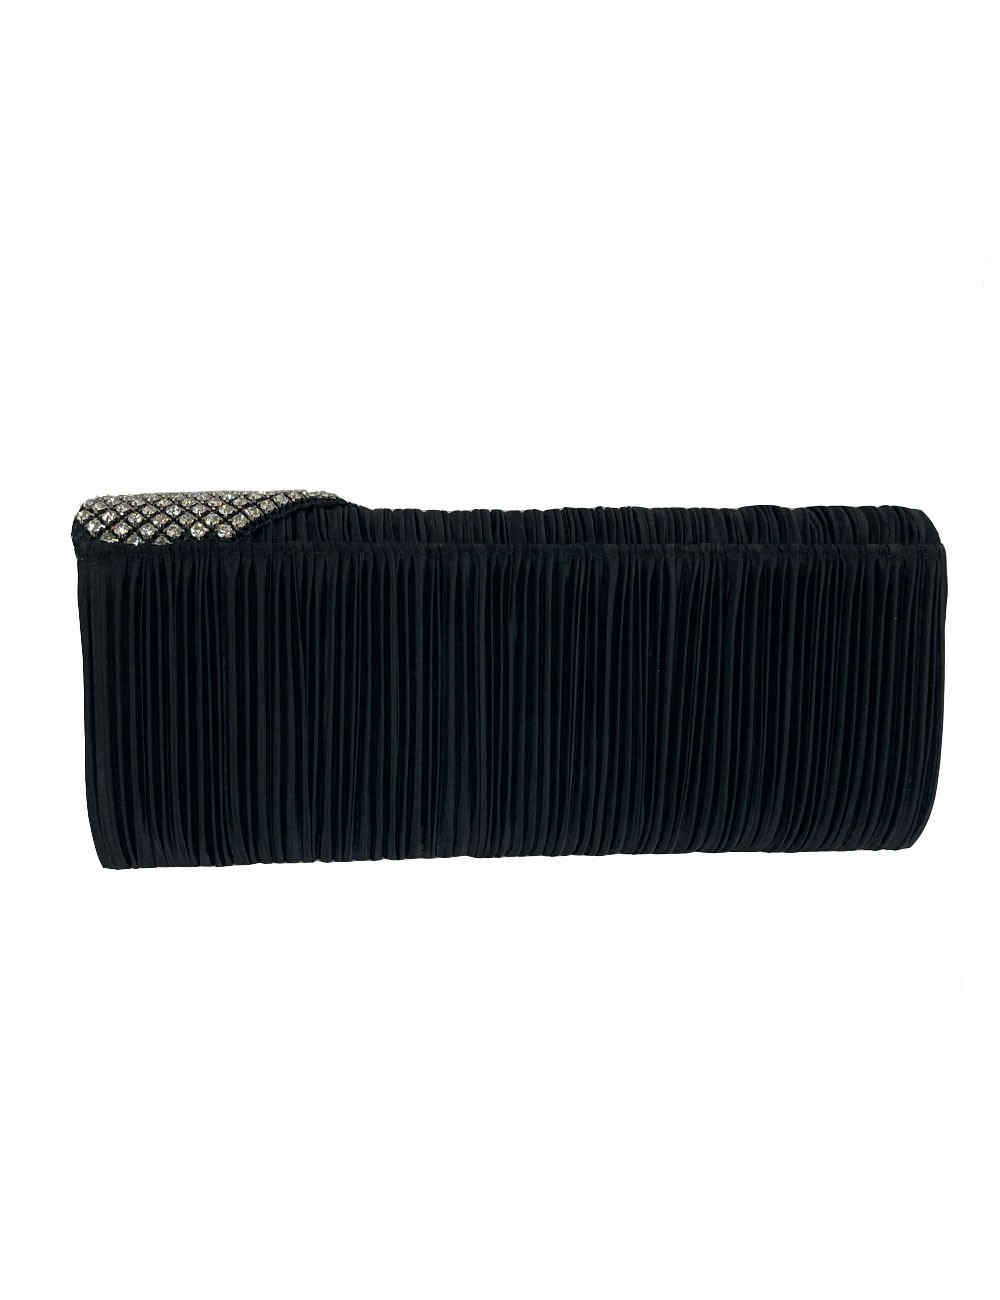 Marilyn's Crystal and Corrugated Fabric Clutch Bag